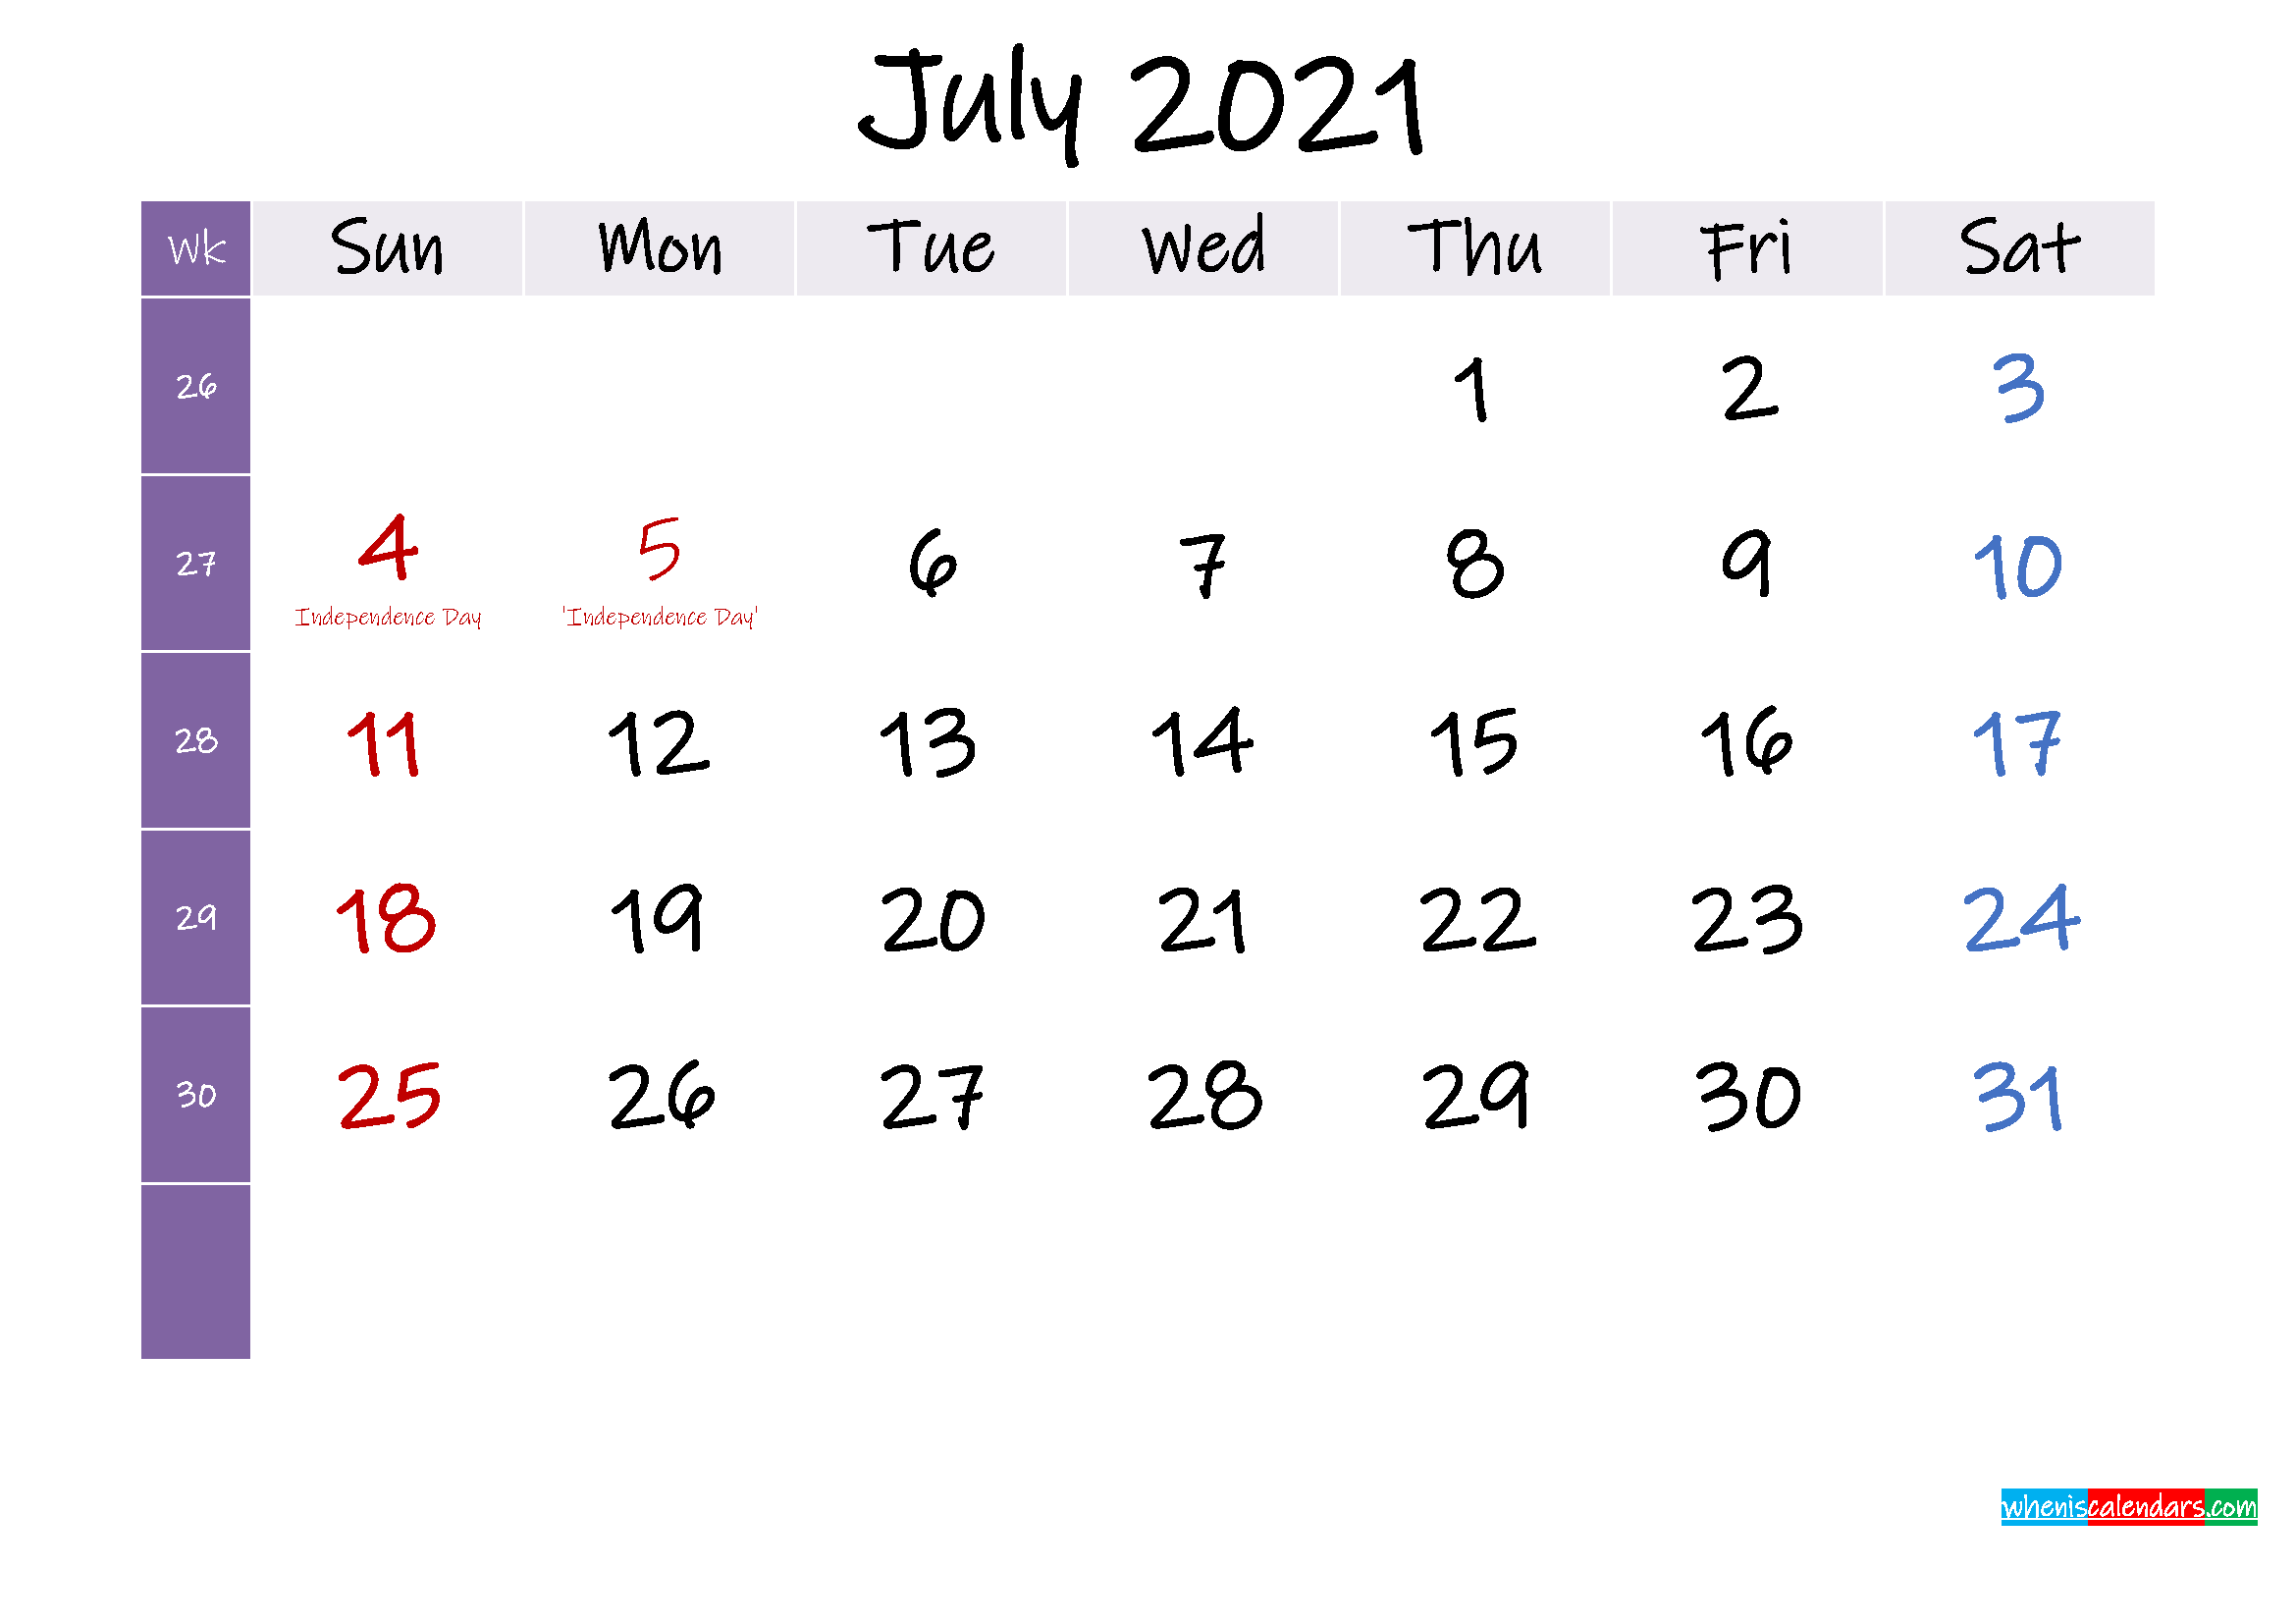 July 2021 Free Printable Calendar with Holidays - Template ...